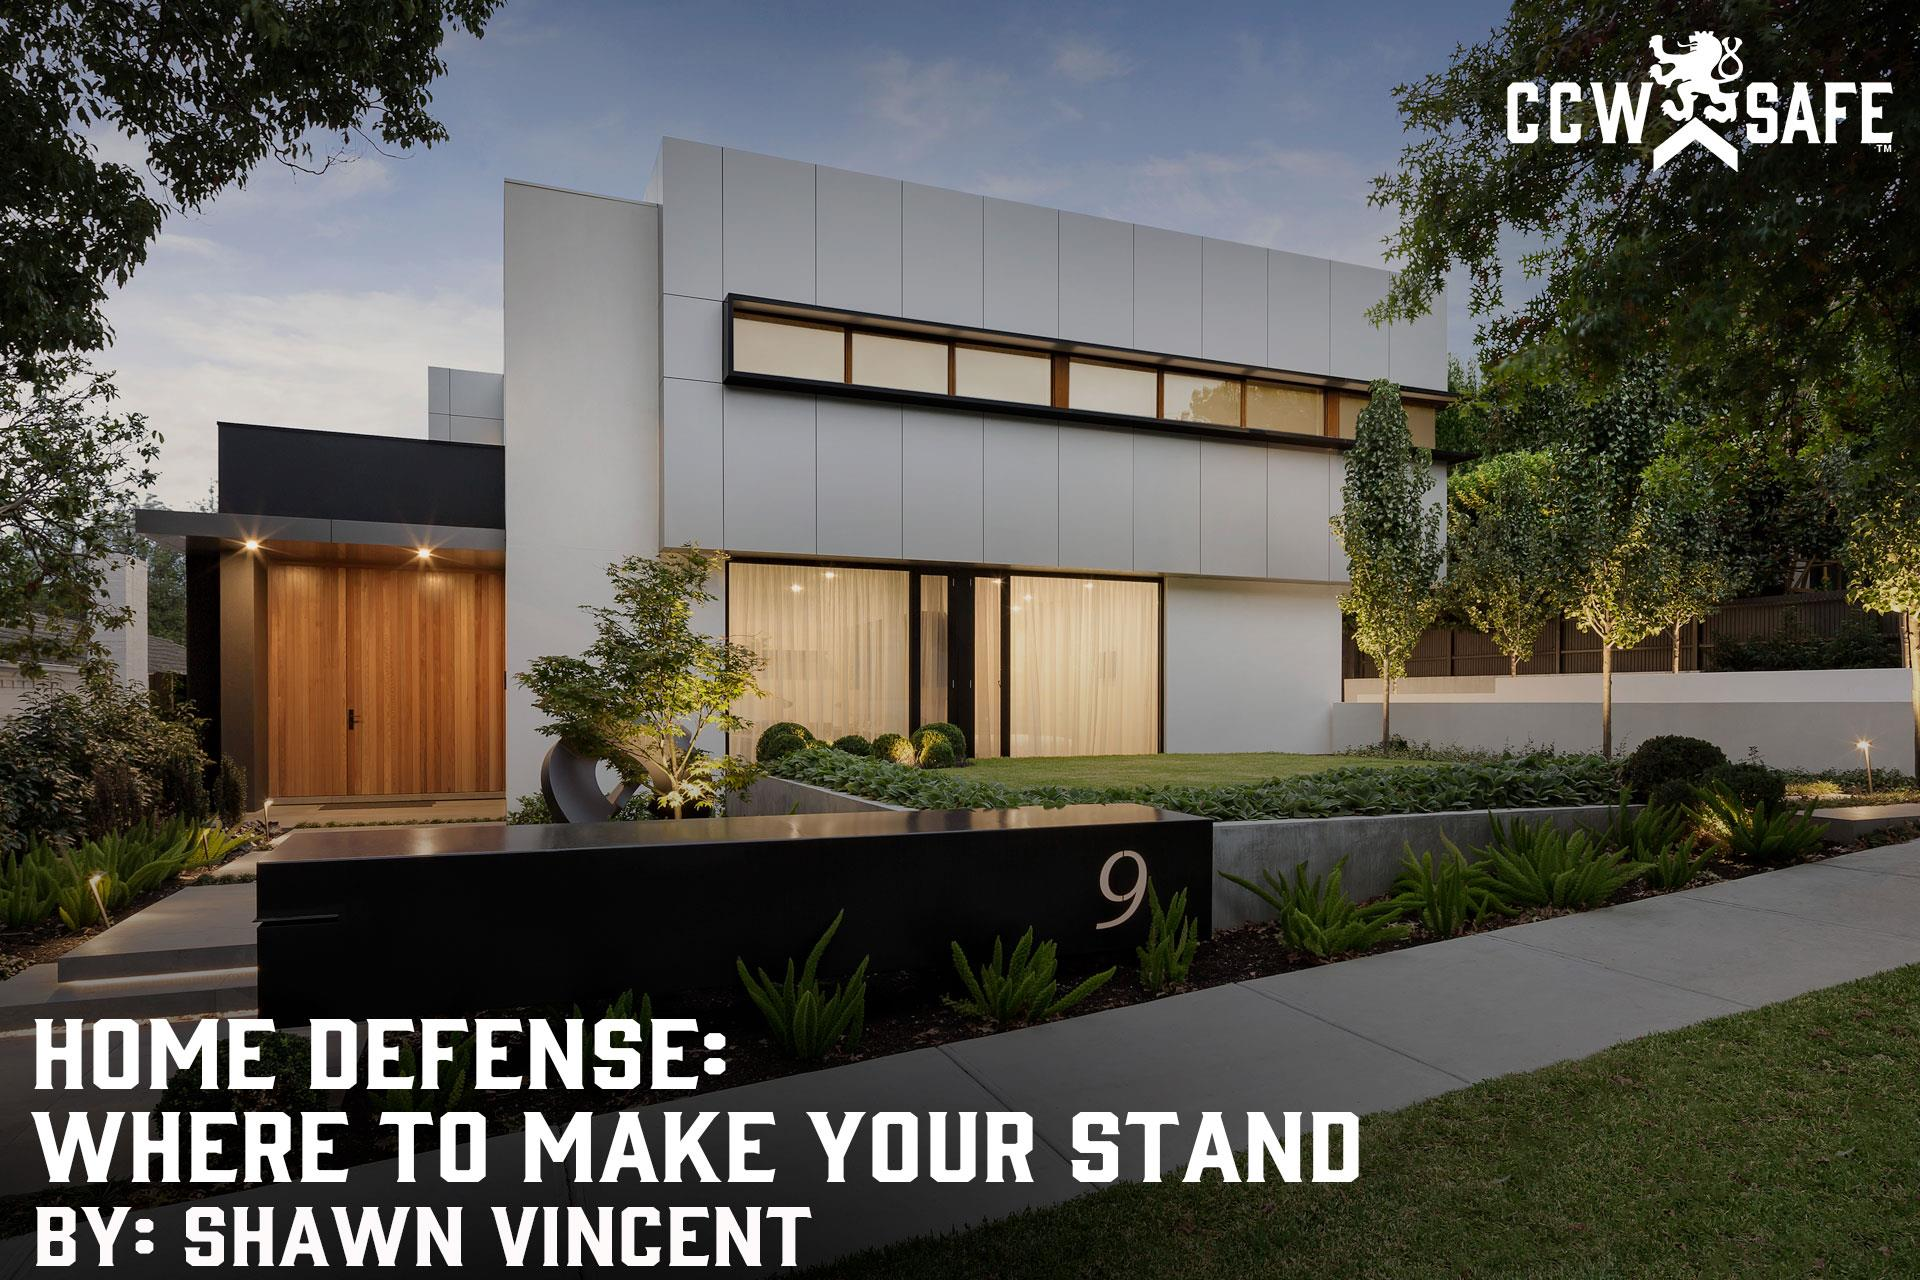 Home Defense: Where to Make Your Stand